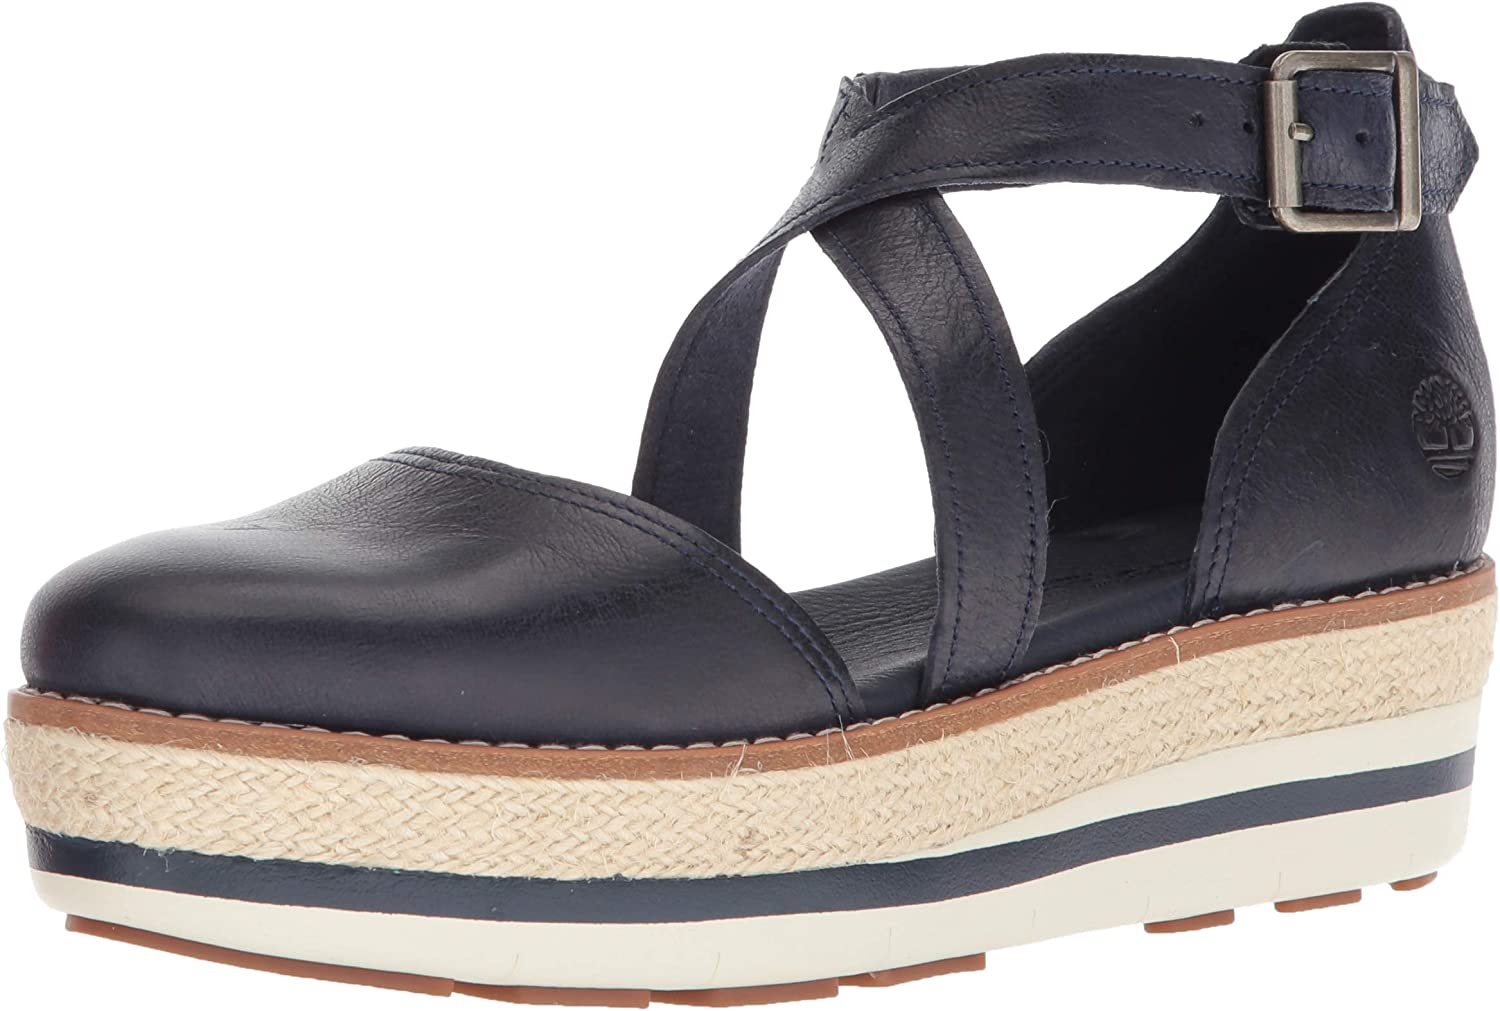 Emerson Point Closed Toe Sandal